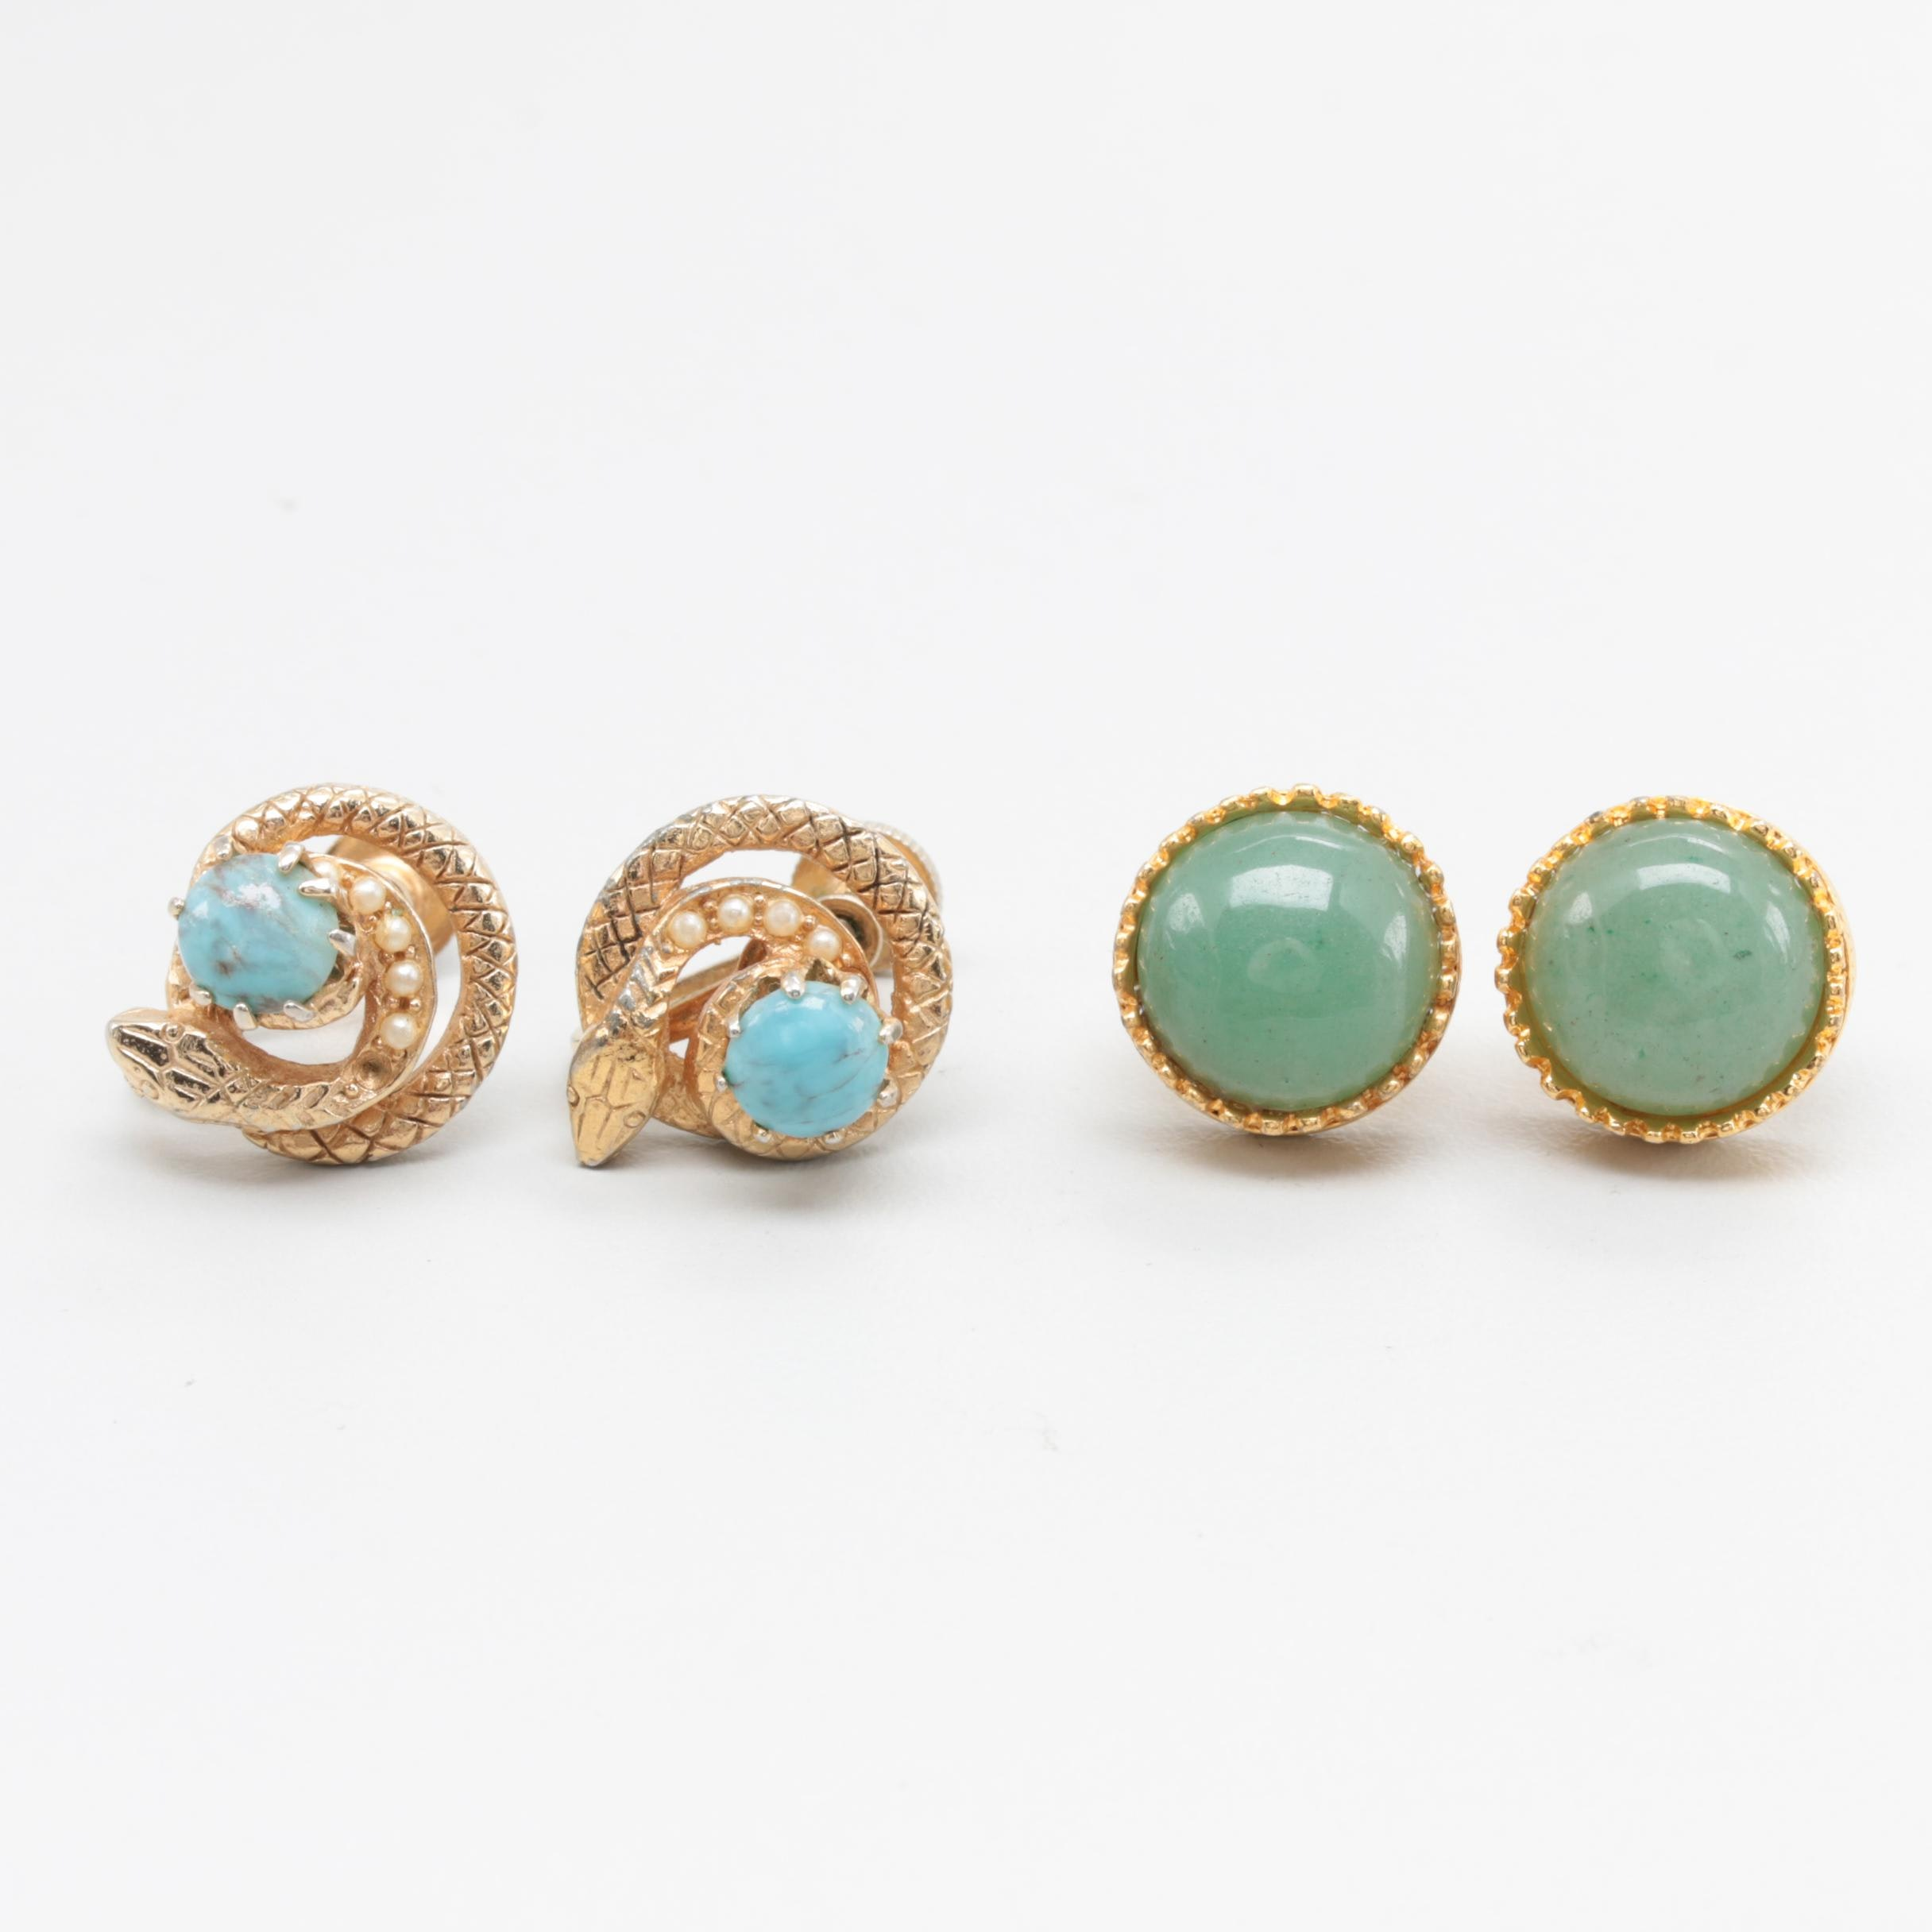 14K Yellow Gold and Gold Tone Earrings Featuring MoMA Aventurine Studs